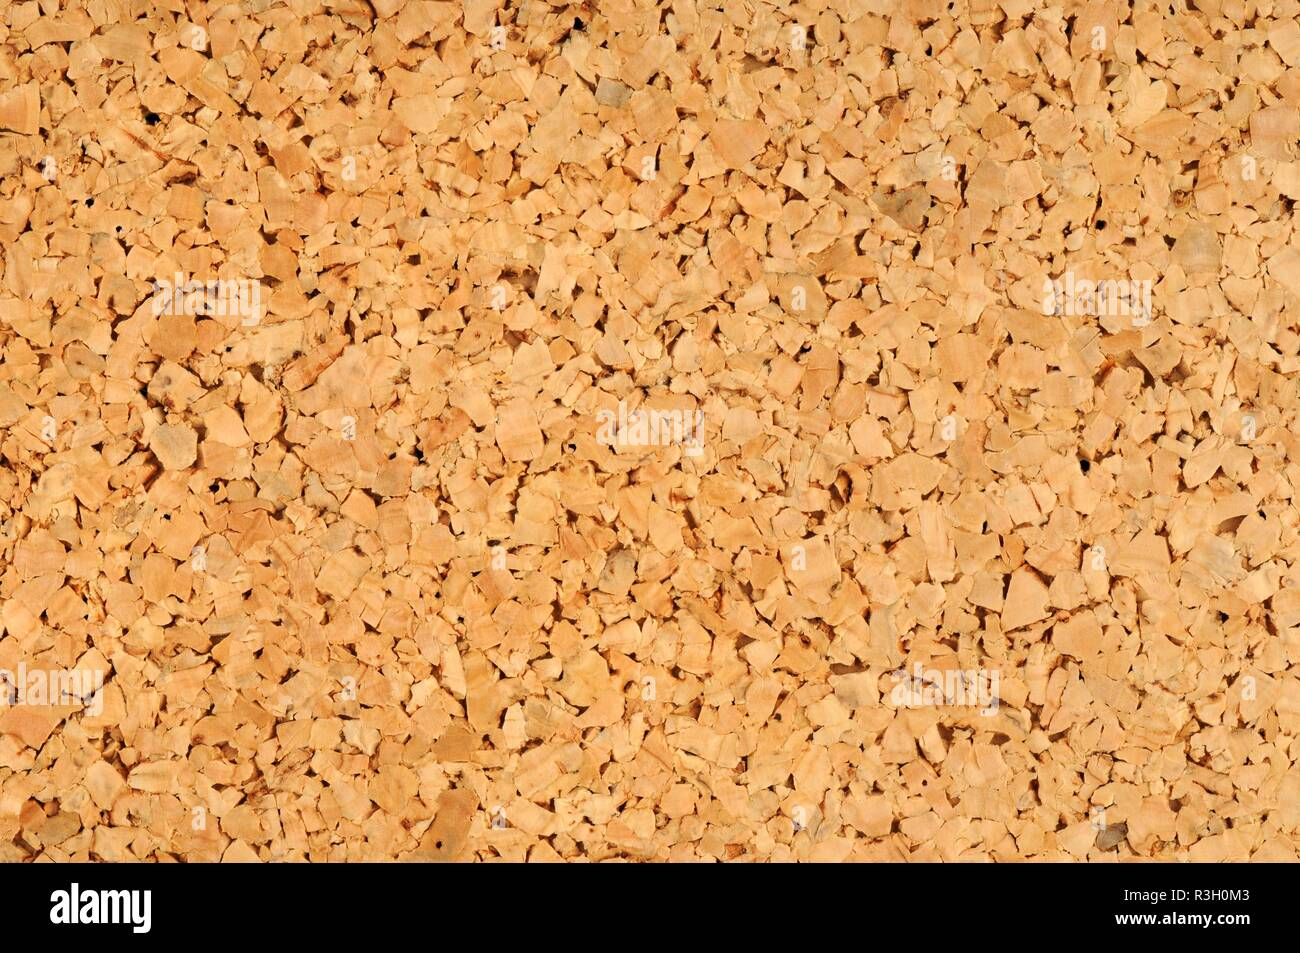 Kork Pinnwand Kork Pinnwand Stock Photos Kork Pinnwand Stock Images Alamy